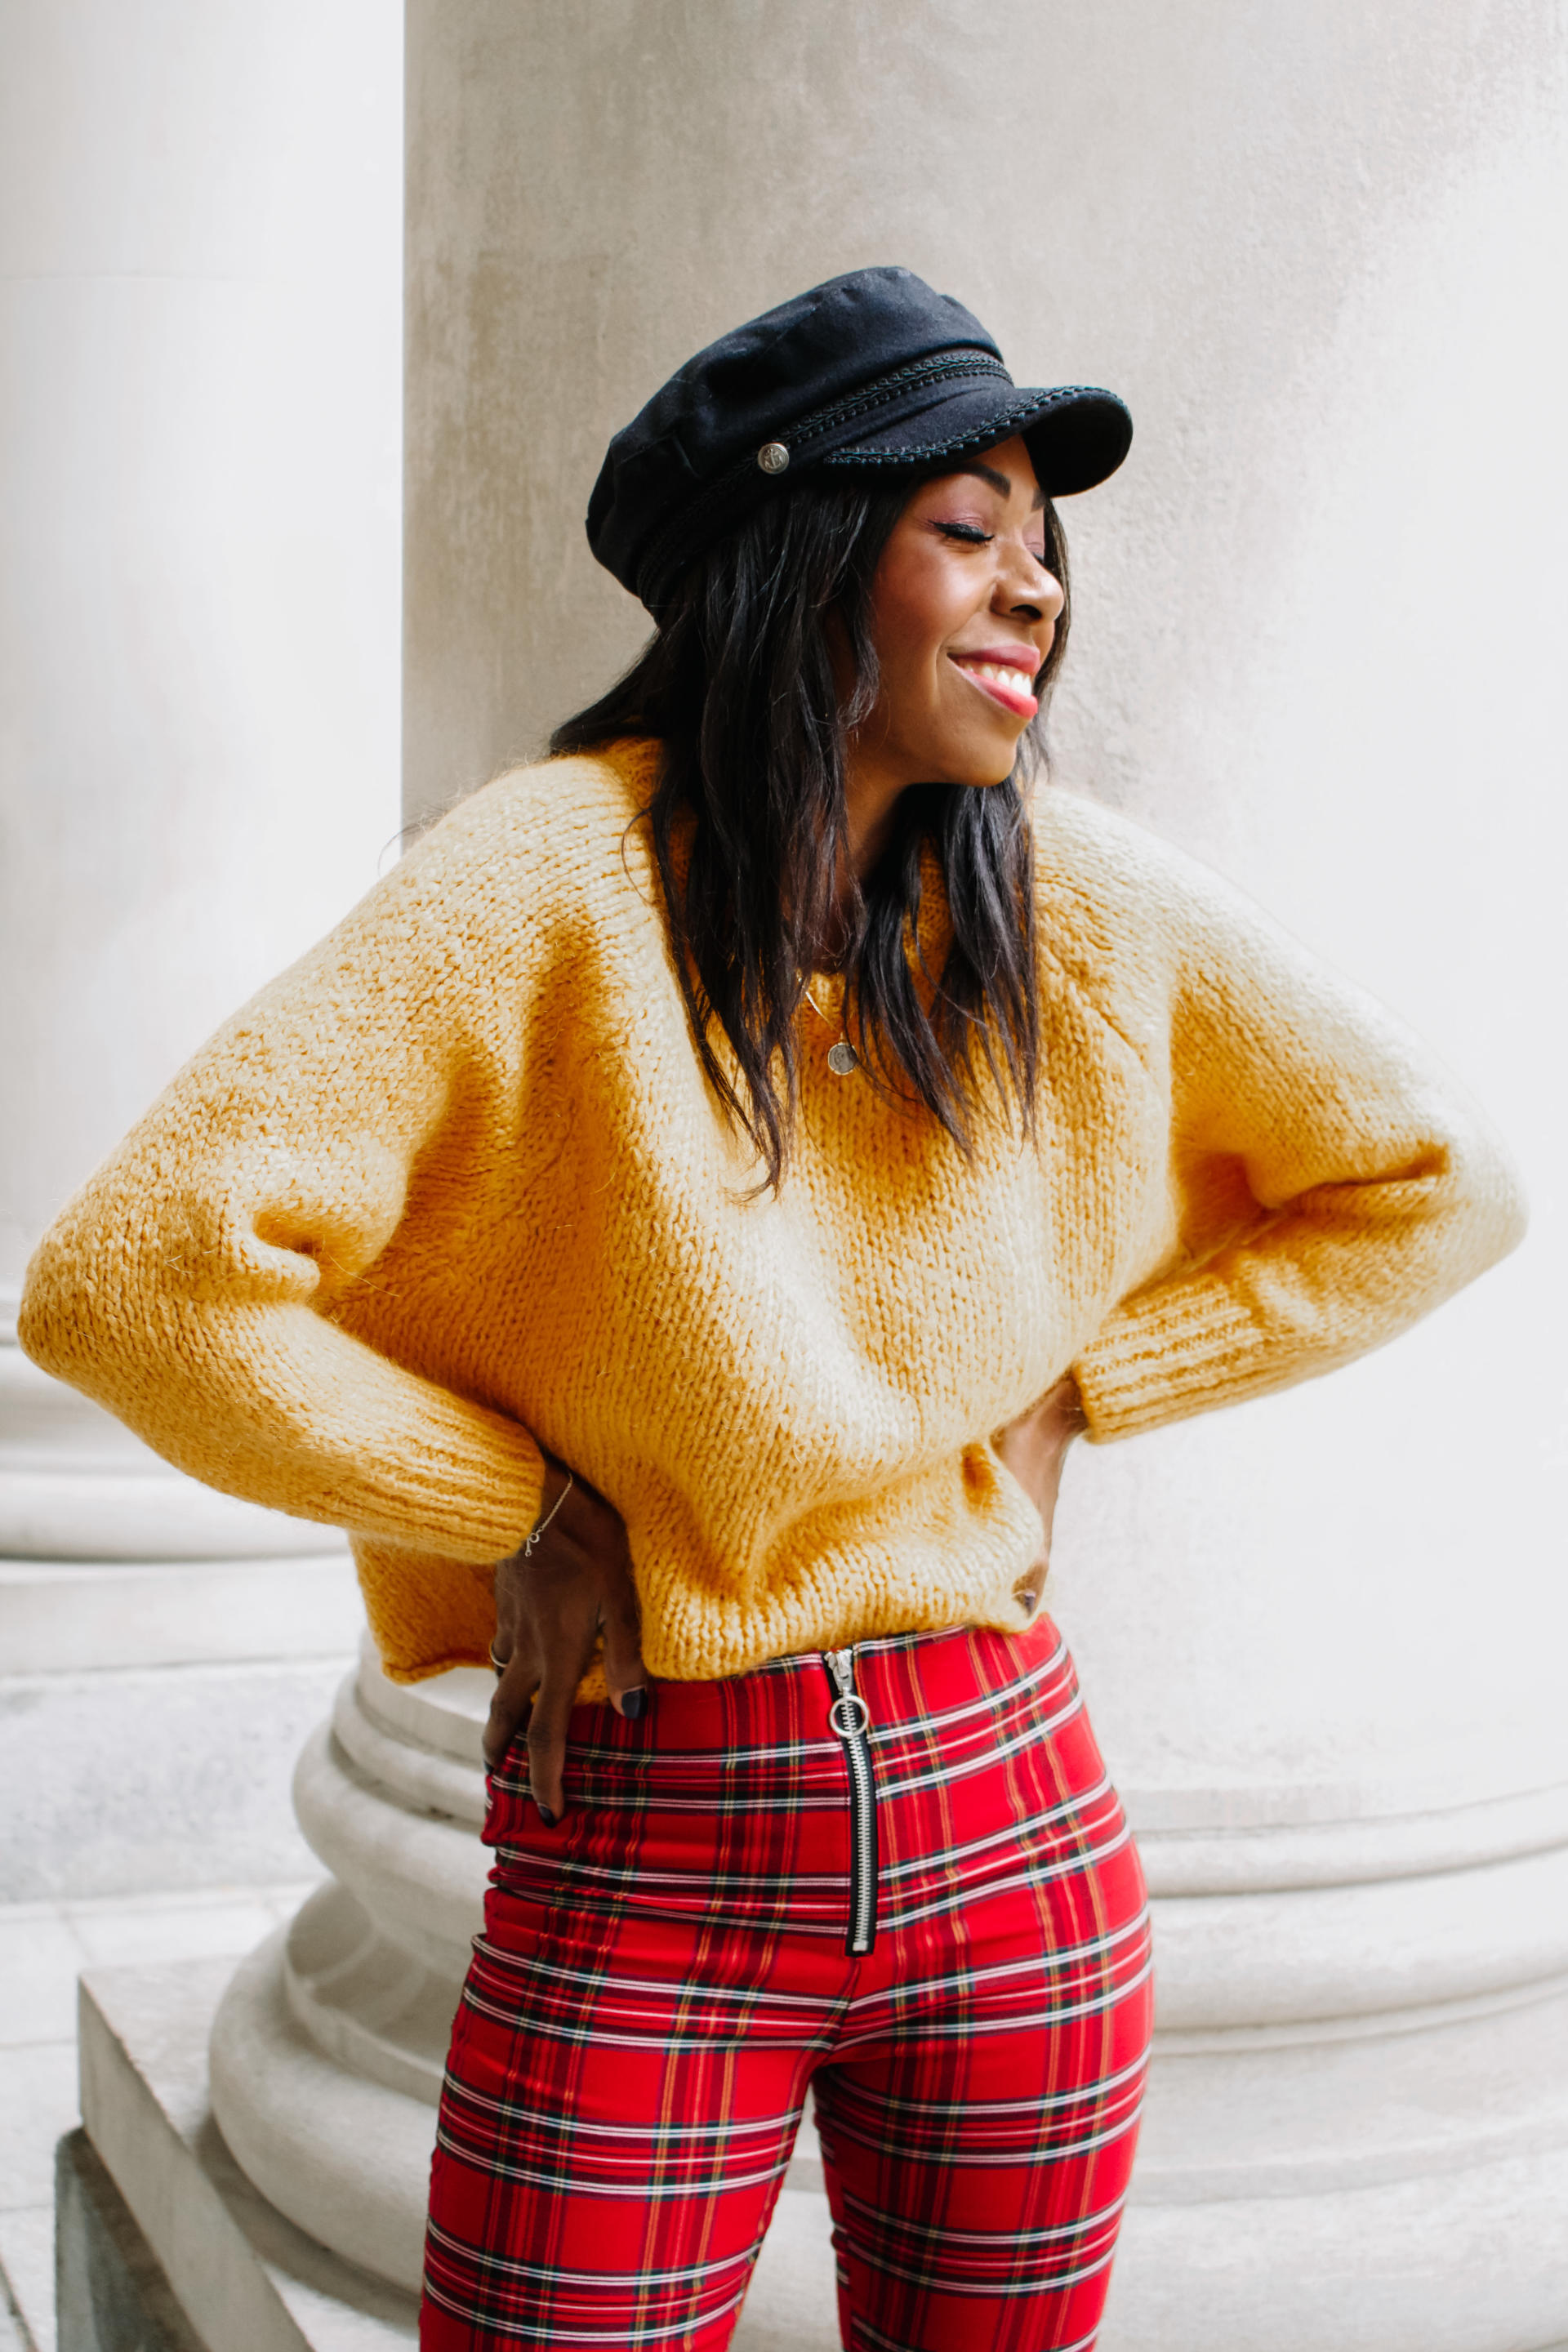 How To Make A Fun Statement This Holiday Season   Style Domination by Dominique Baker